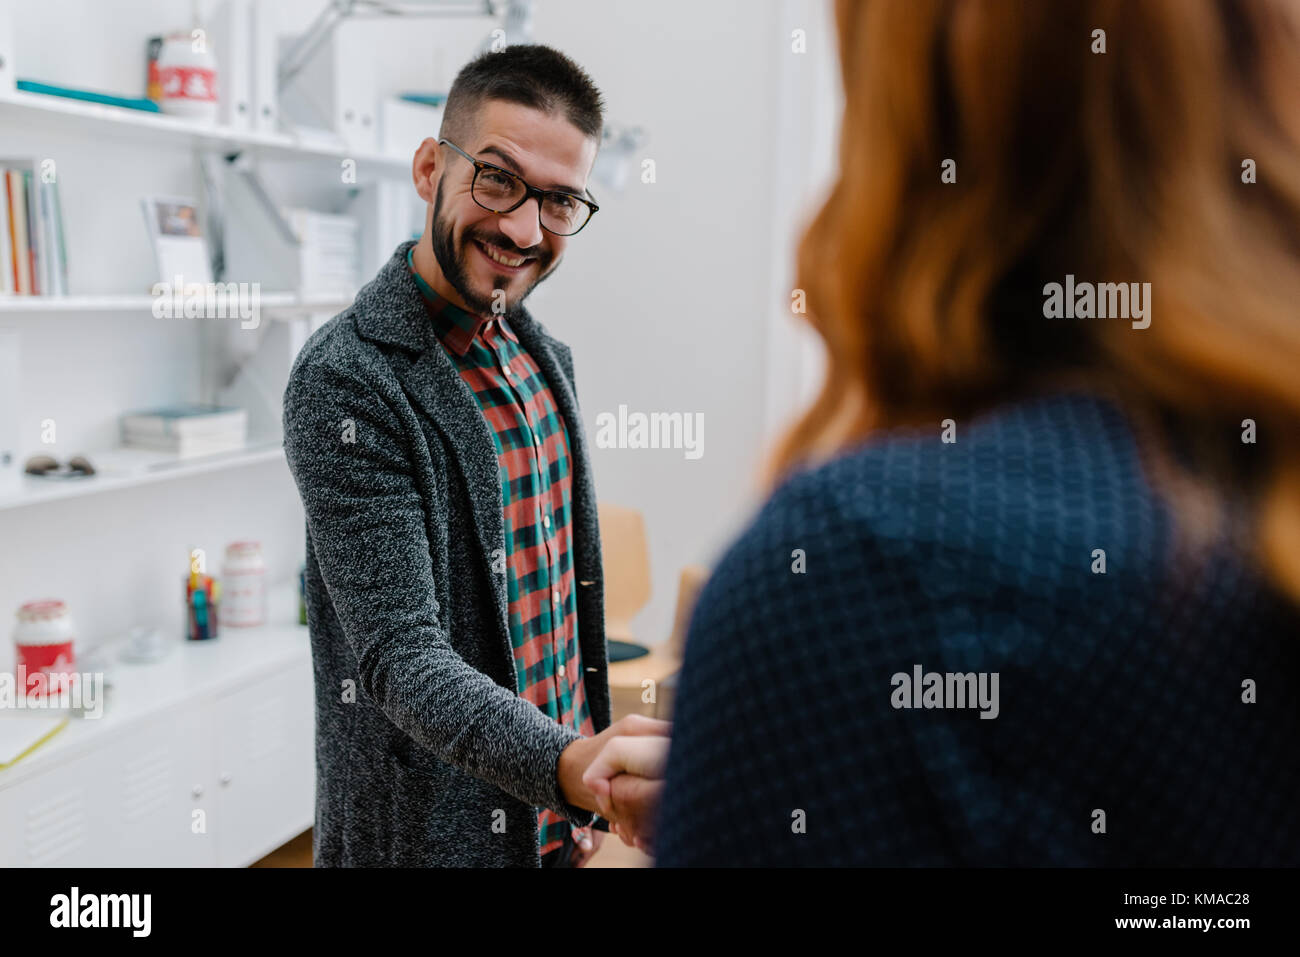 Sharp-minded executive welcoming his new employee - Stock Image